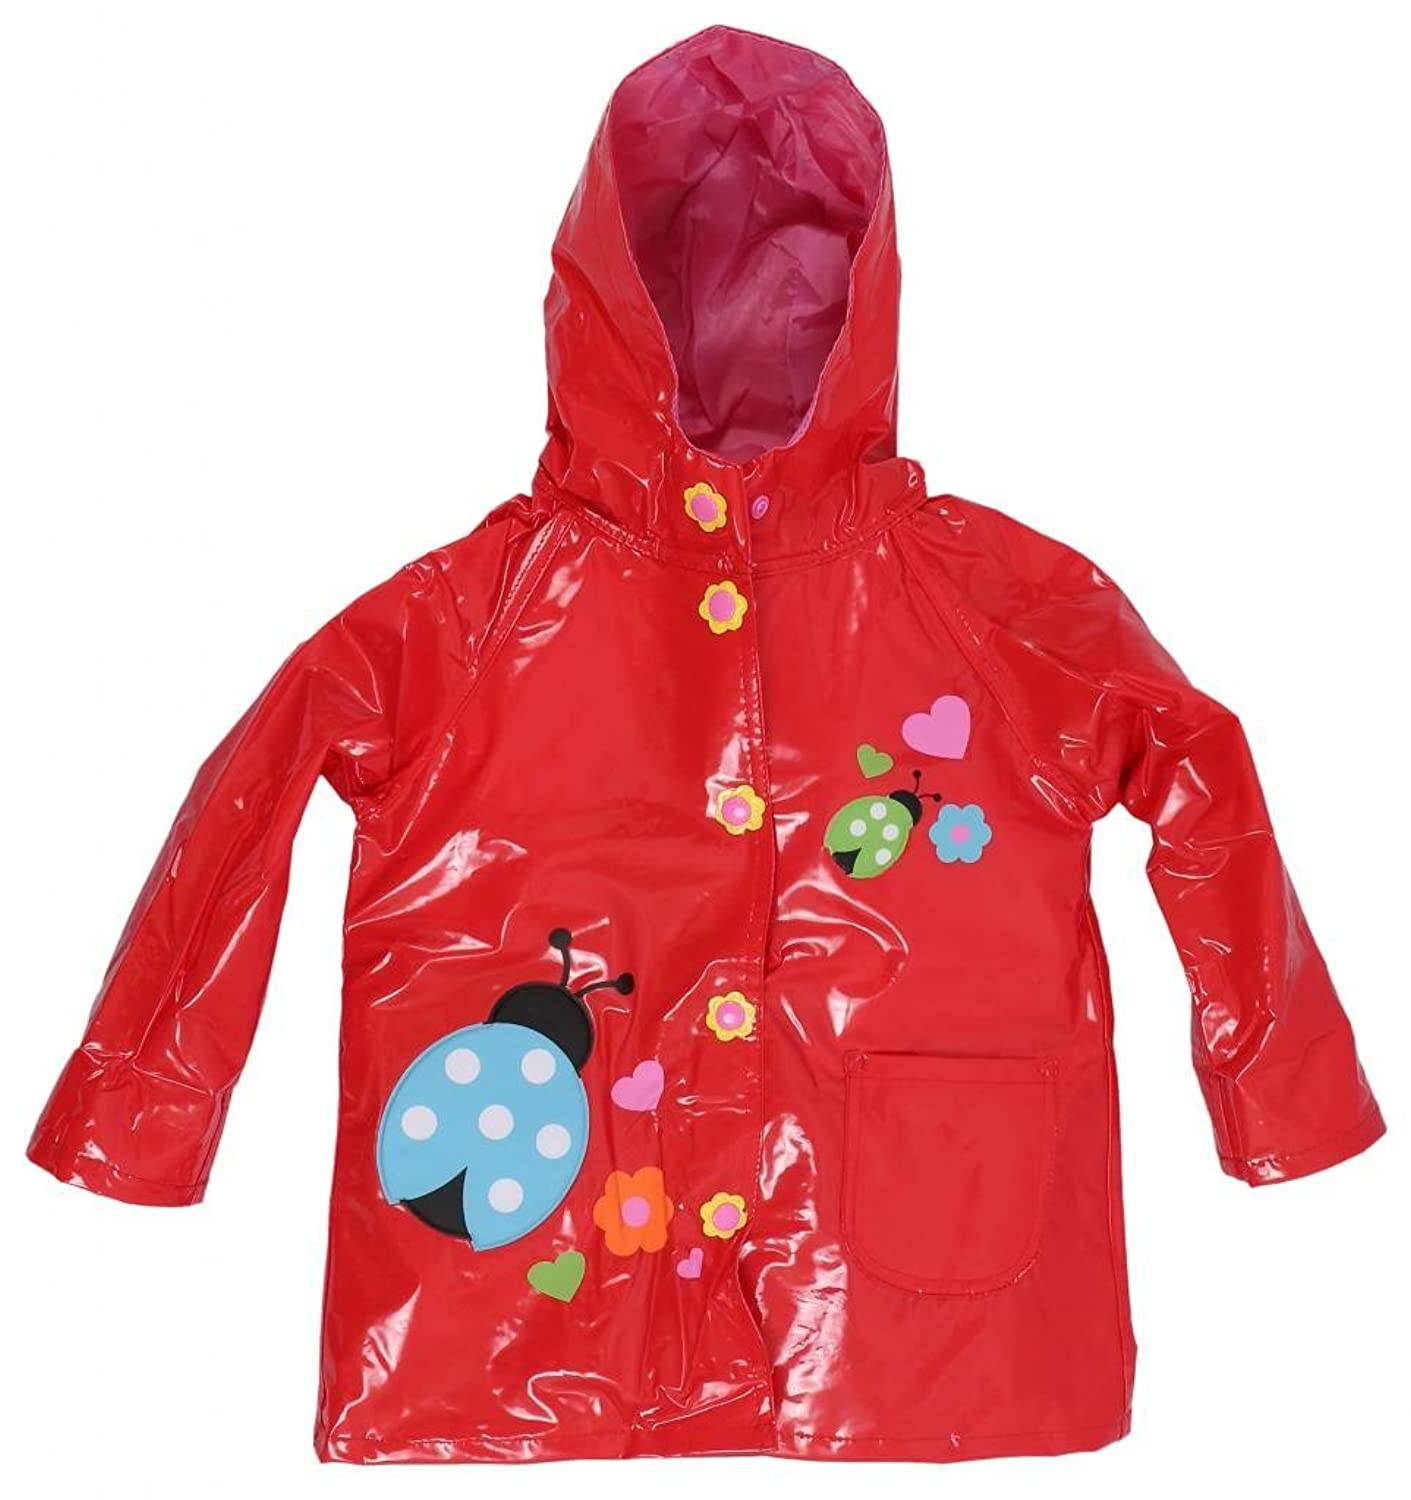 Wippette Girls Waterproof Lined Spring Summer Hooded Trench Raincoat Jacket